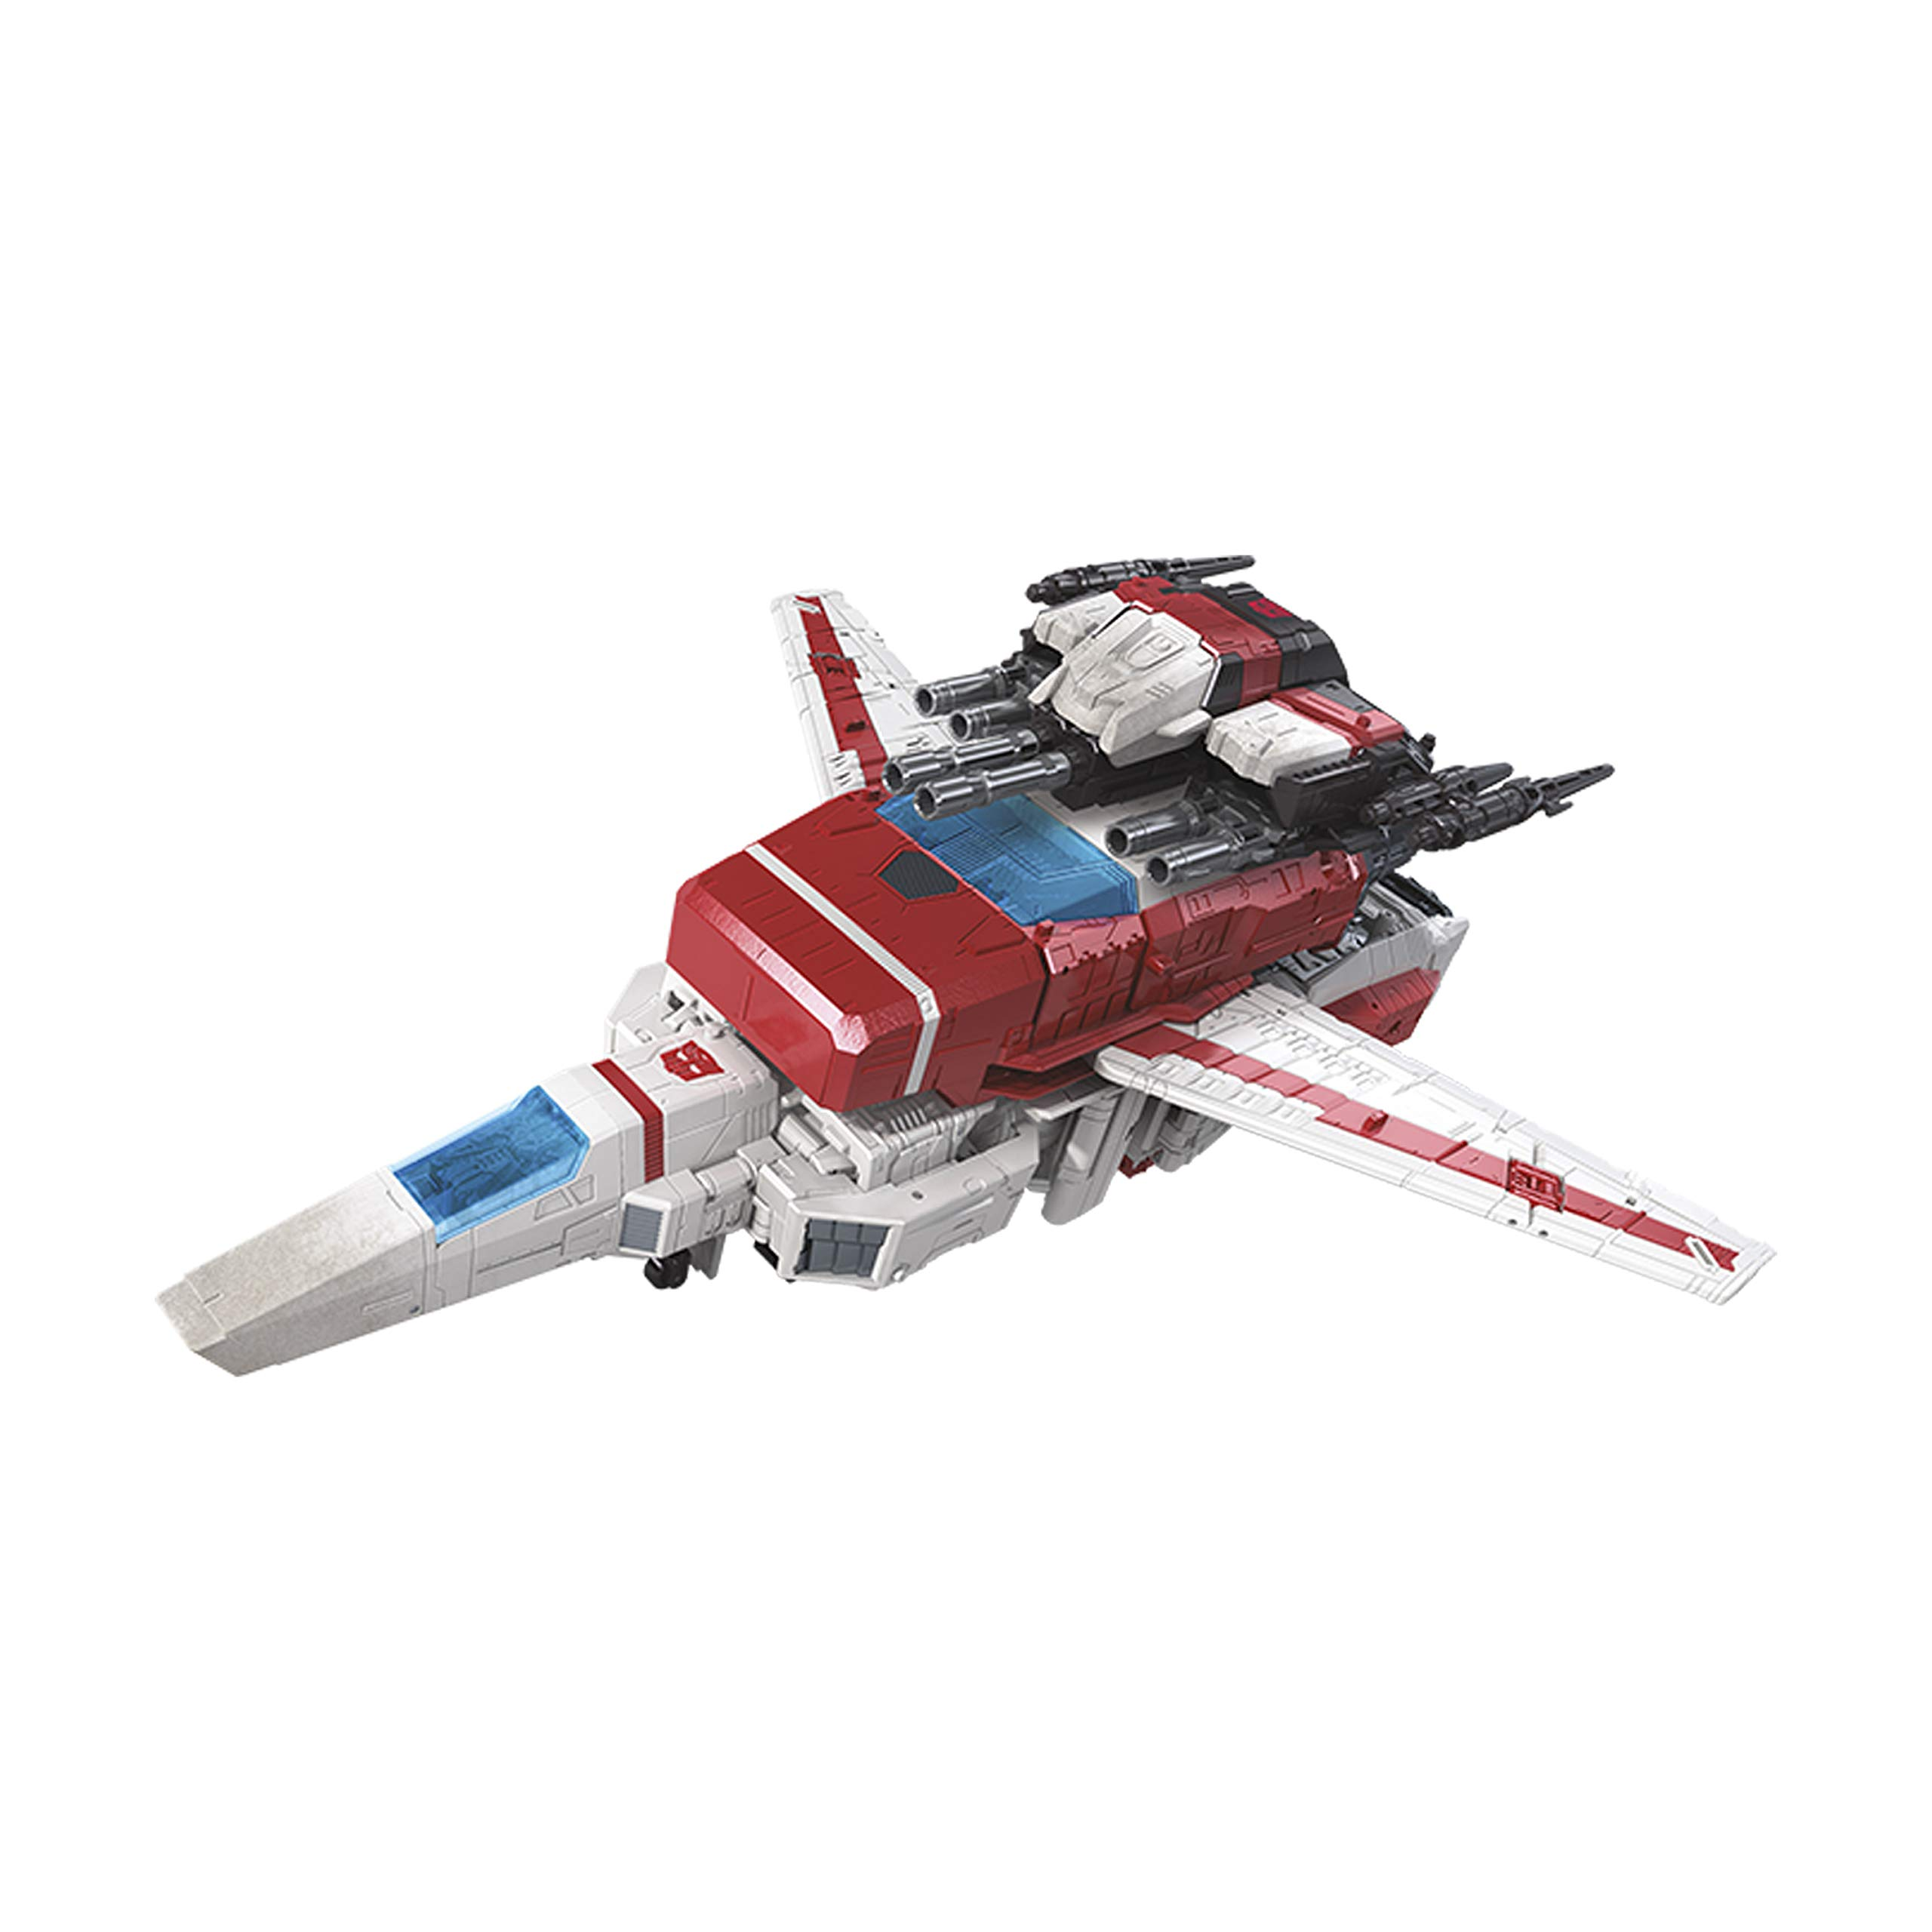 Transformers Toys Generations War for Cybertron Commander Wfc-S28 Jetfire Action Figure - Siege Chapter - Adults & Kids Ages 8 & Up, 11'' by Transformers (Image #3)